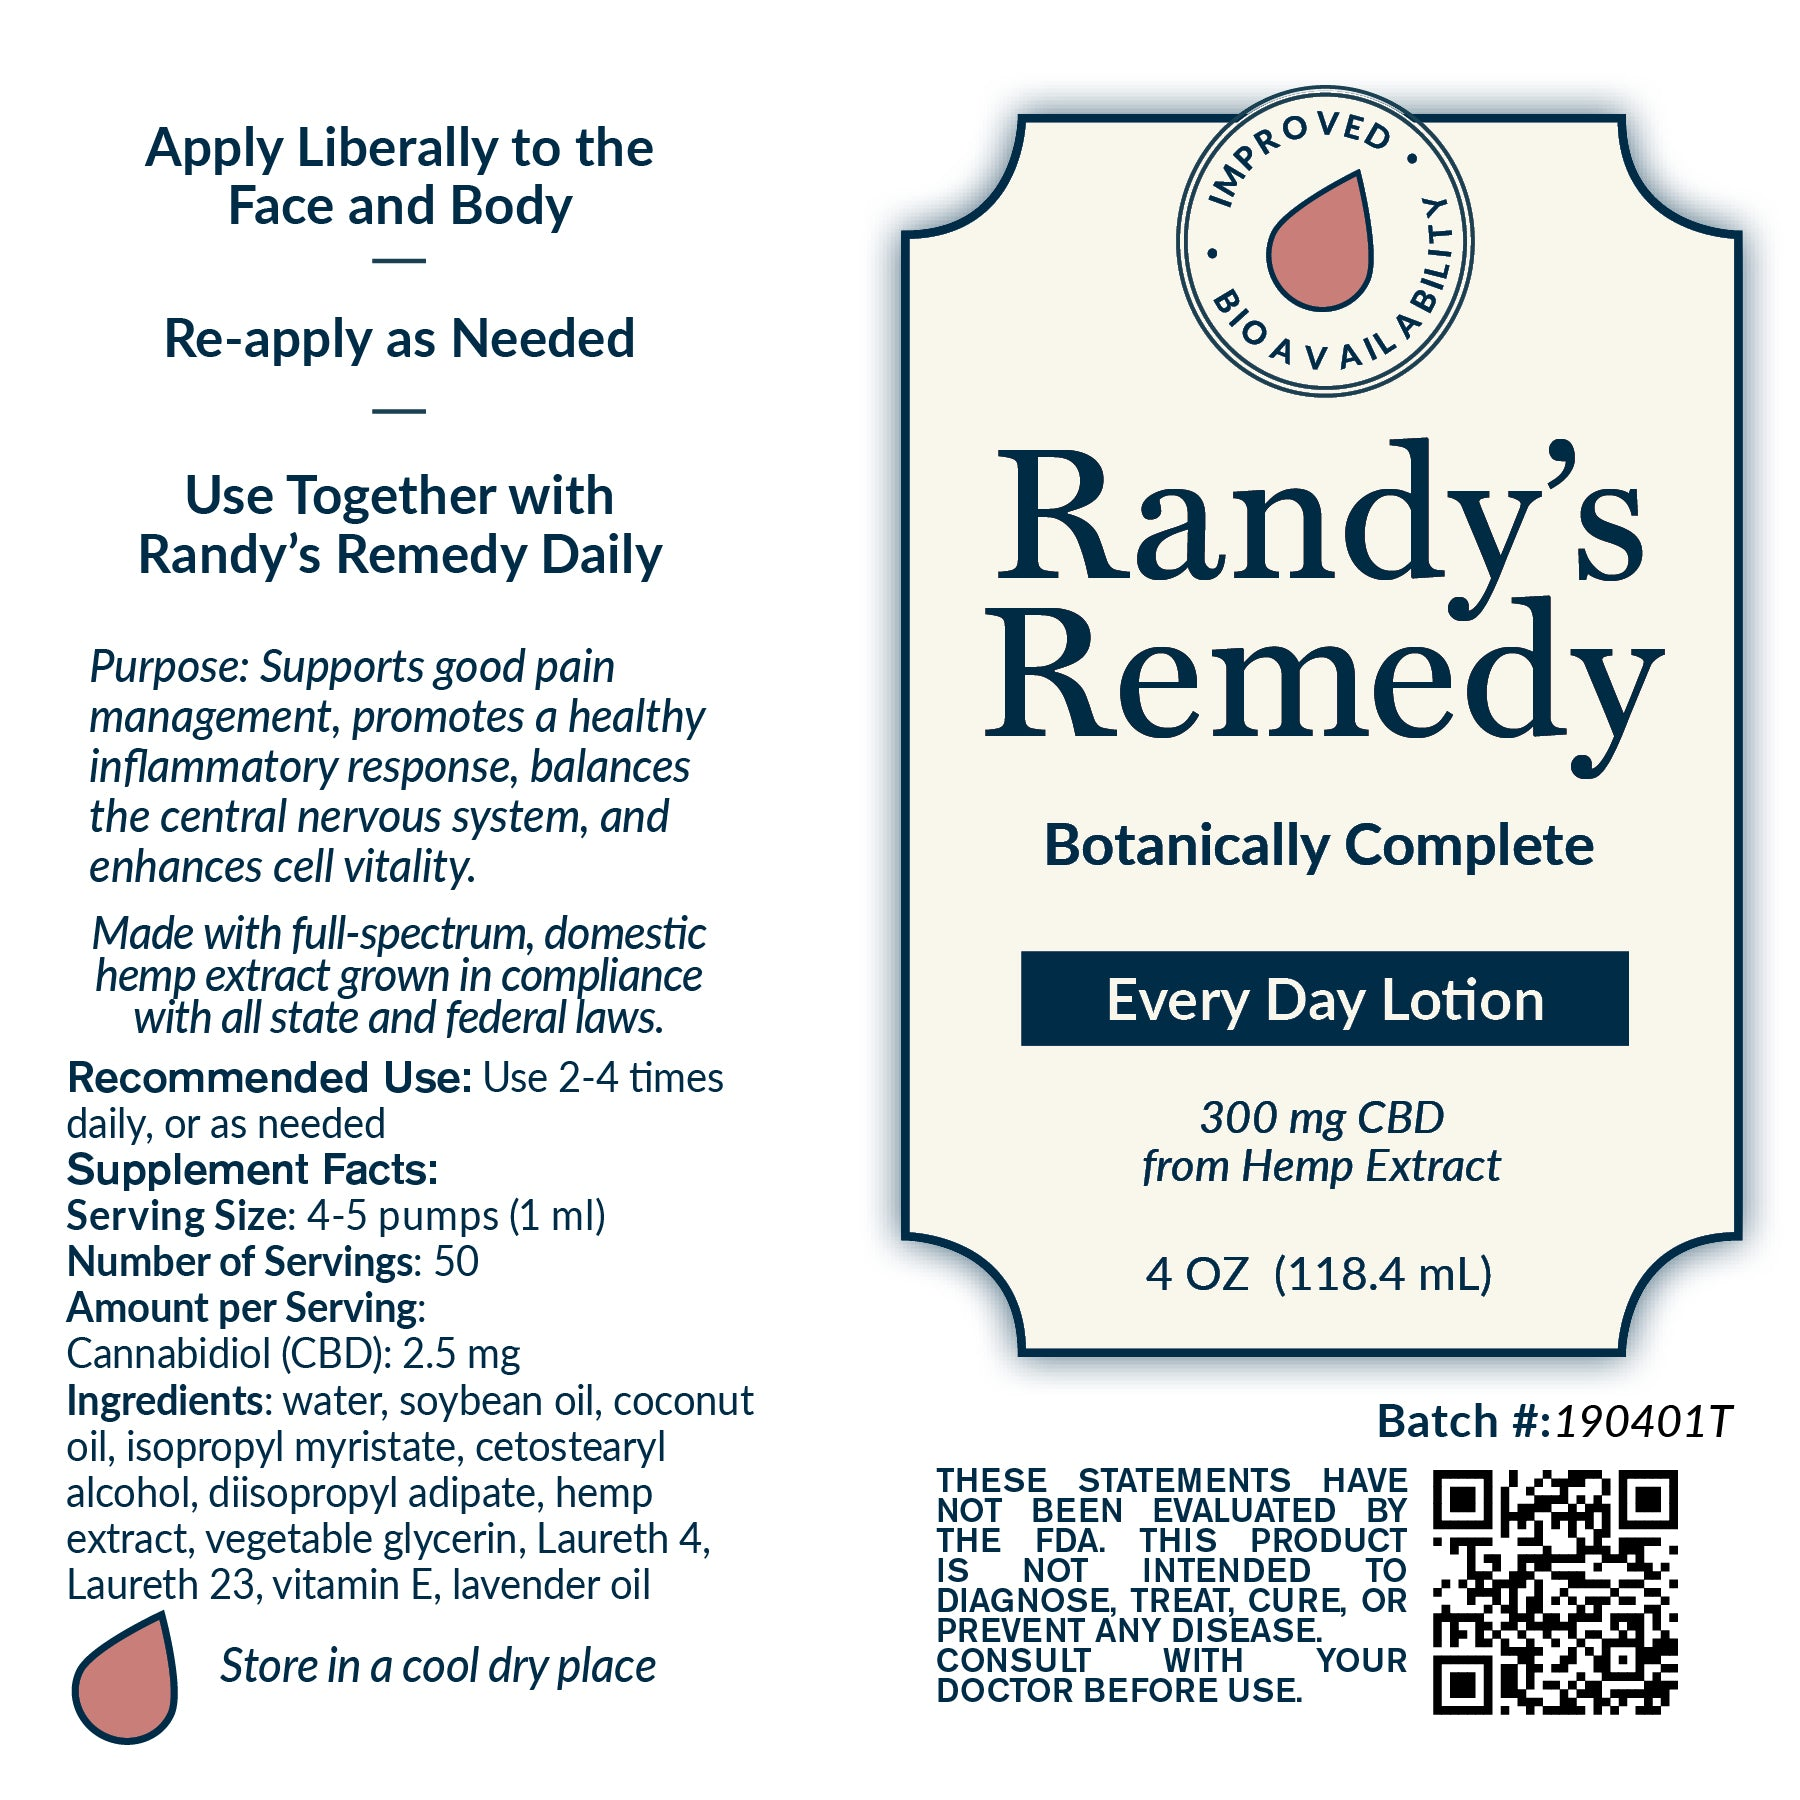 Randy's Remedy Everyday Lotion